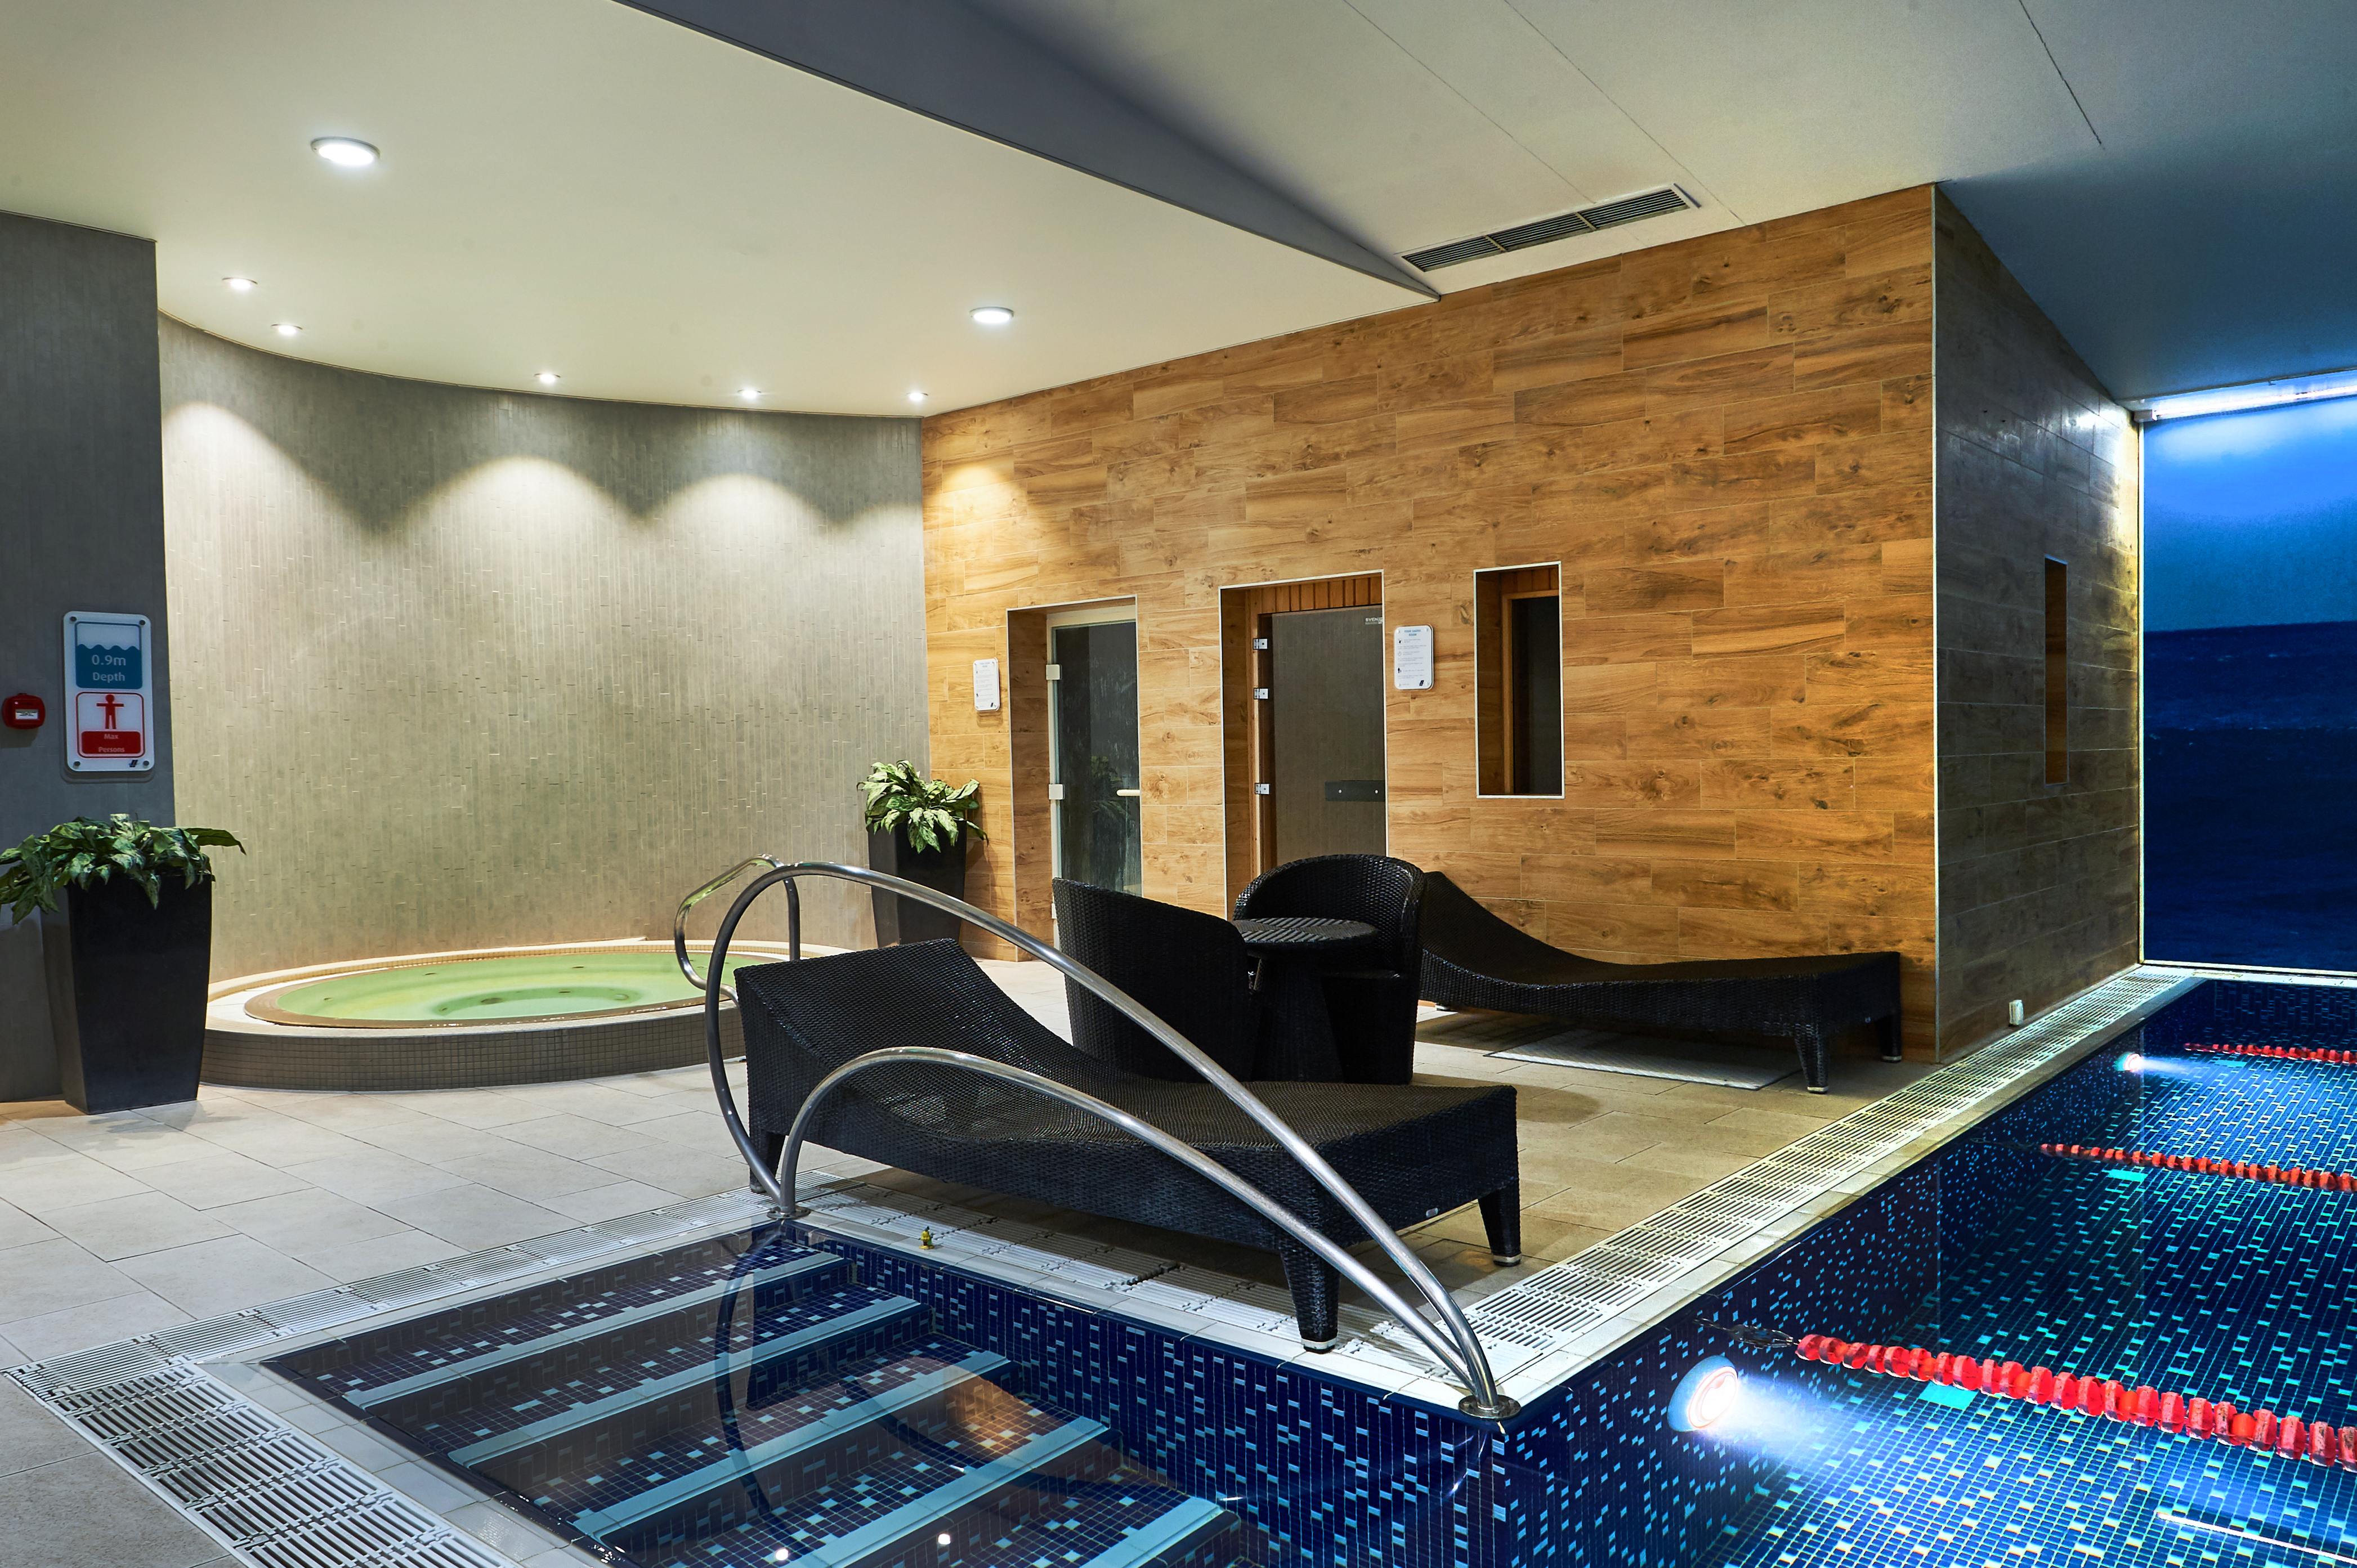 The spa area at Notting Hill